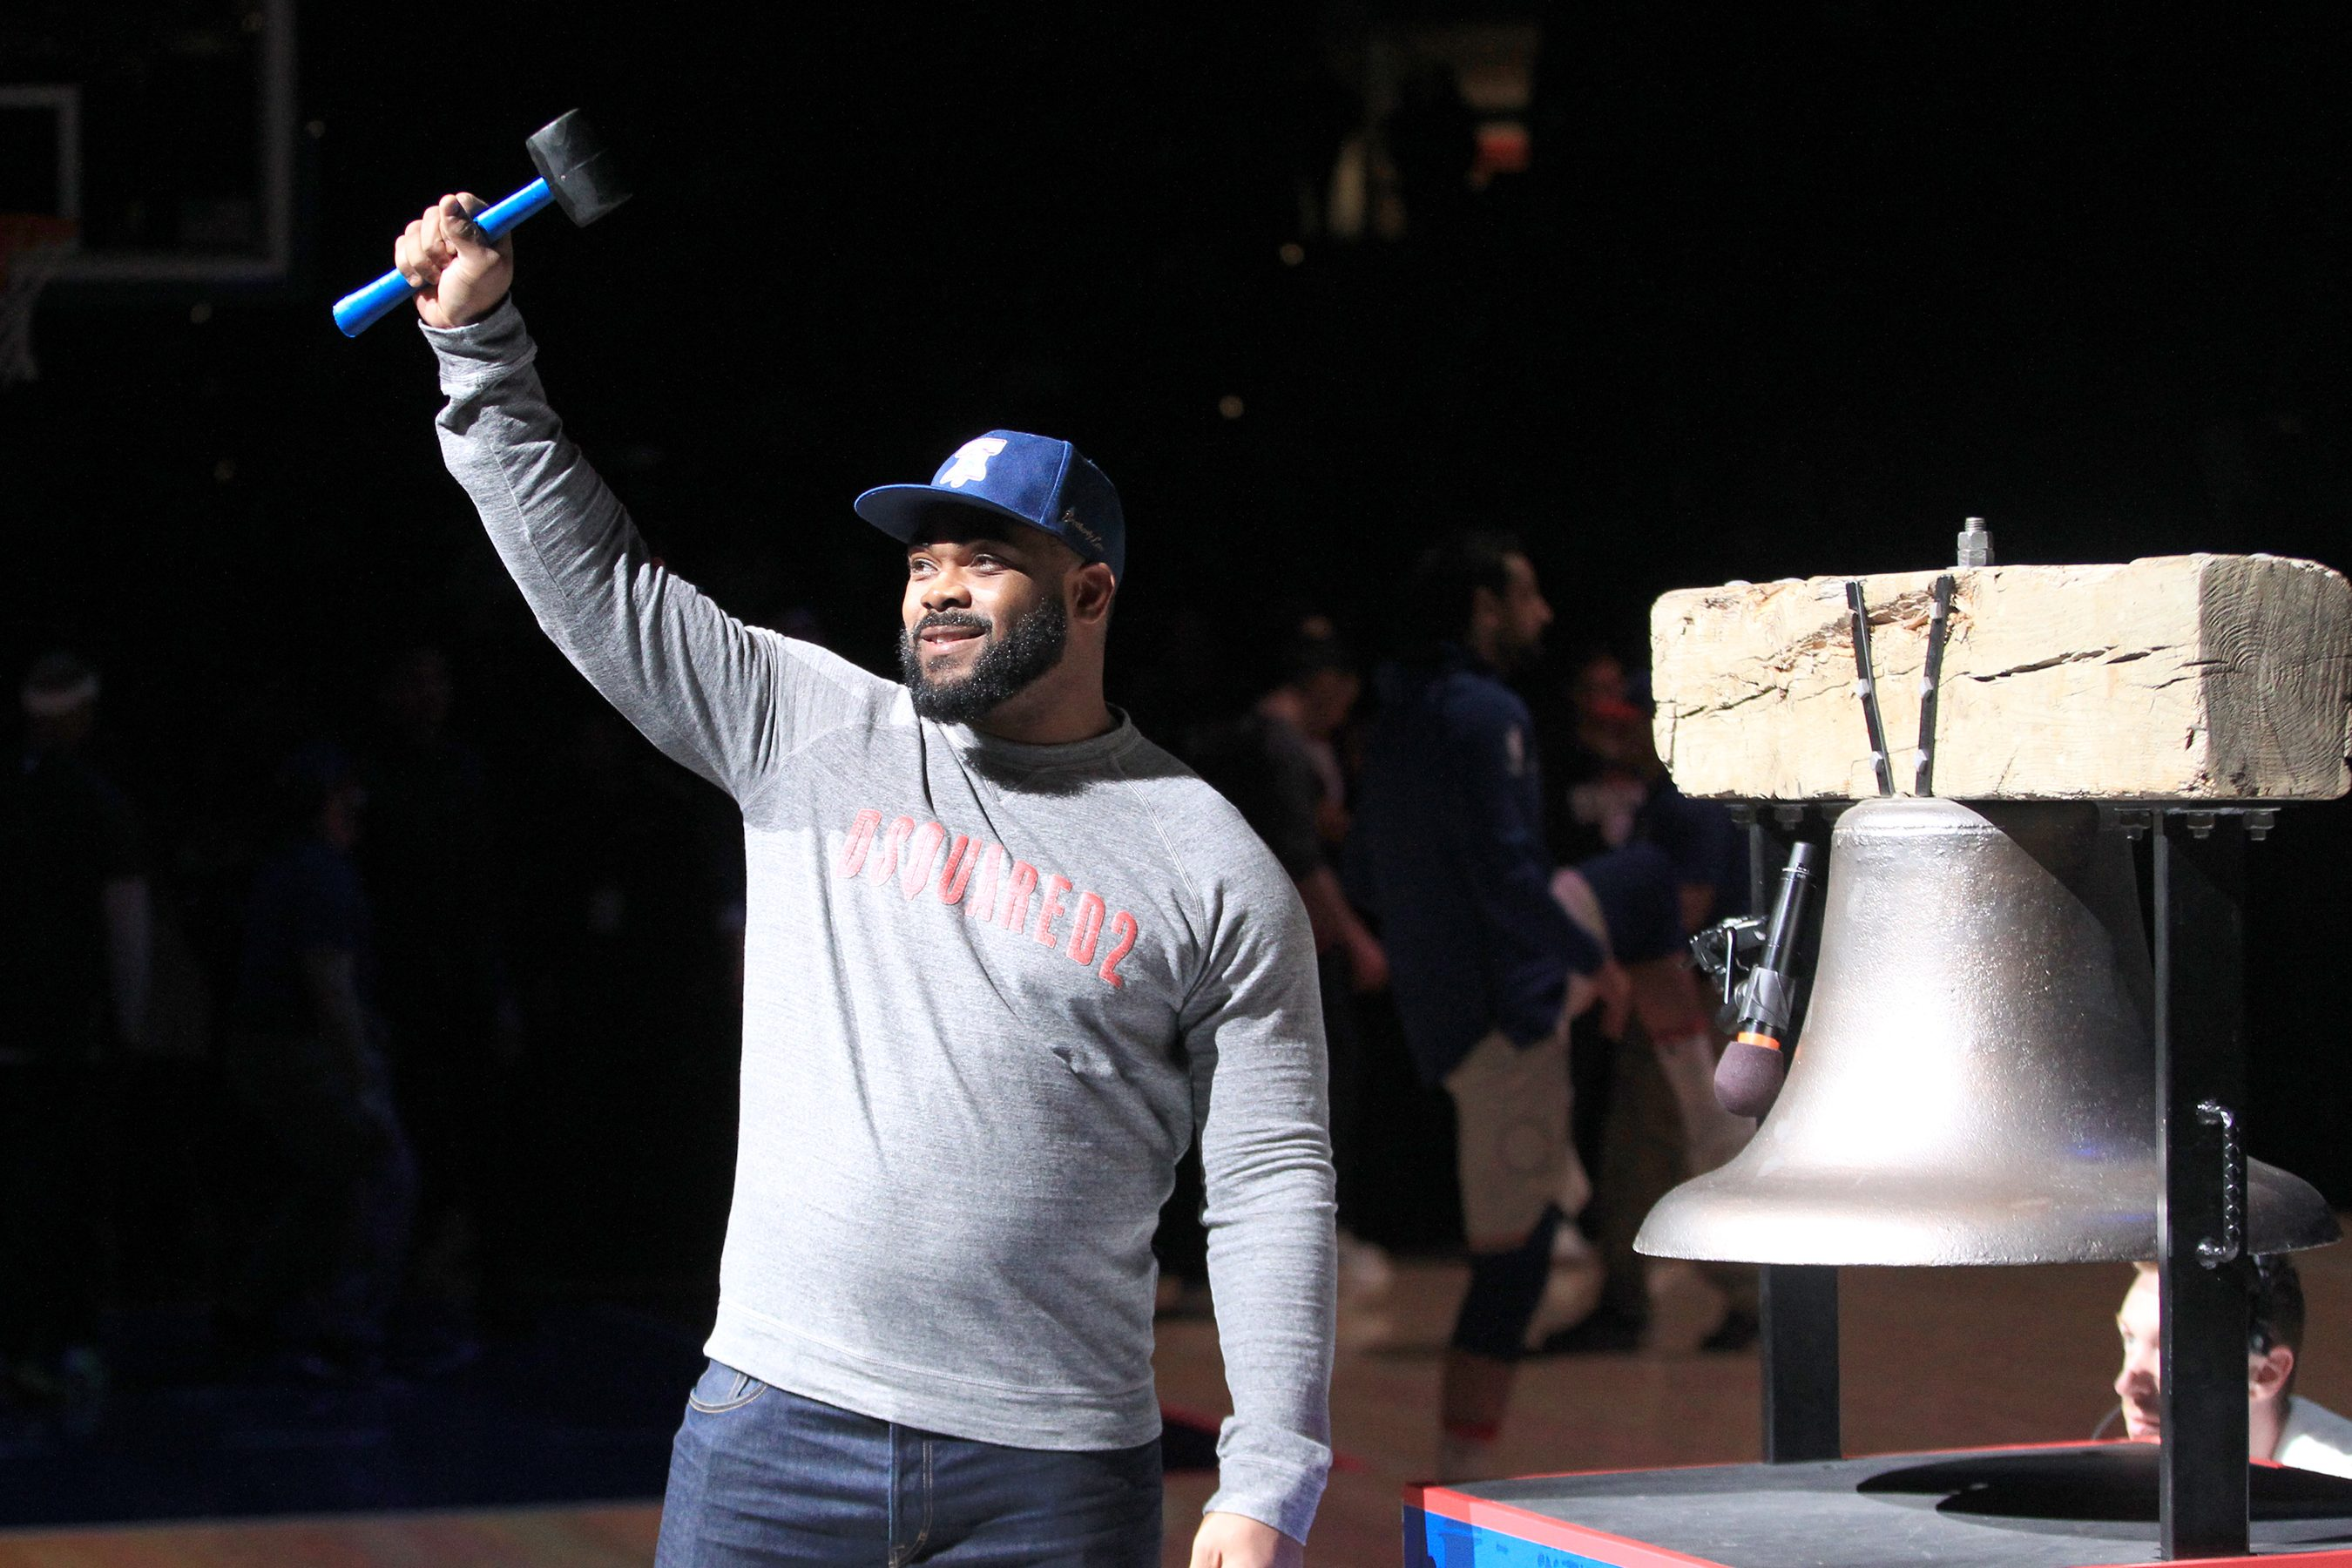 Brandon Graham of the Eagles rang the Liberty Bell replica before the Sixers and Hornets game at the Wells Fargo Center on March 2, 2018.